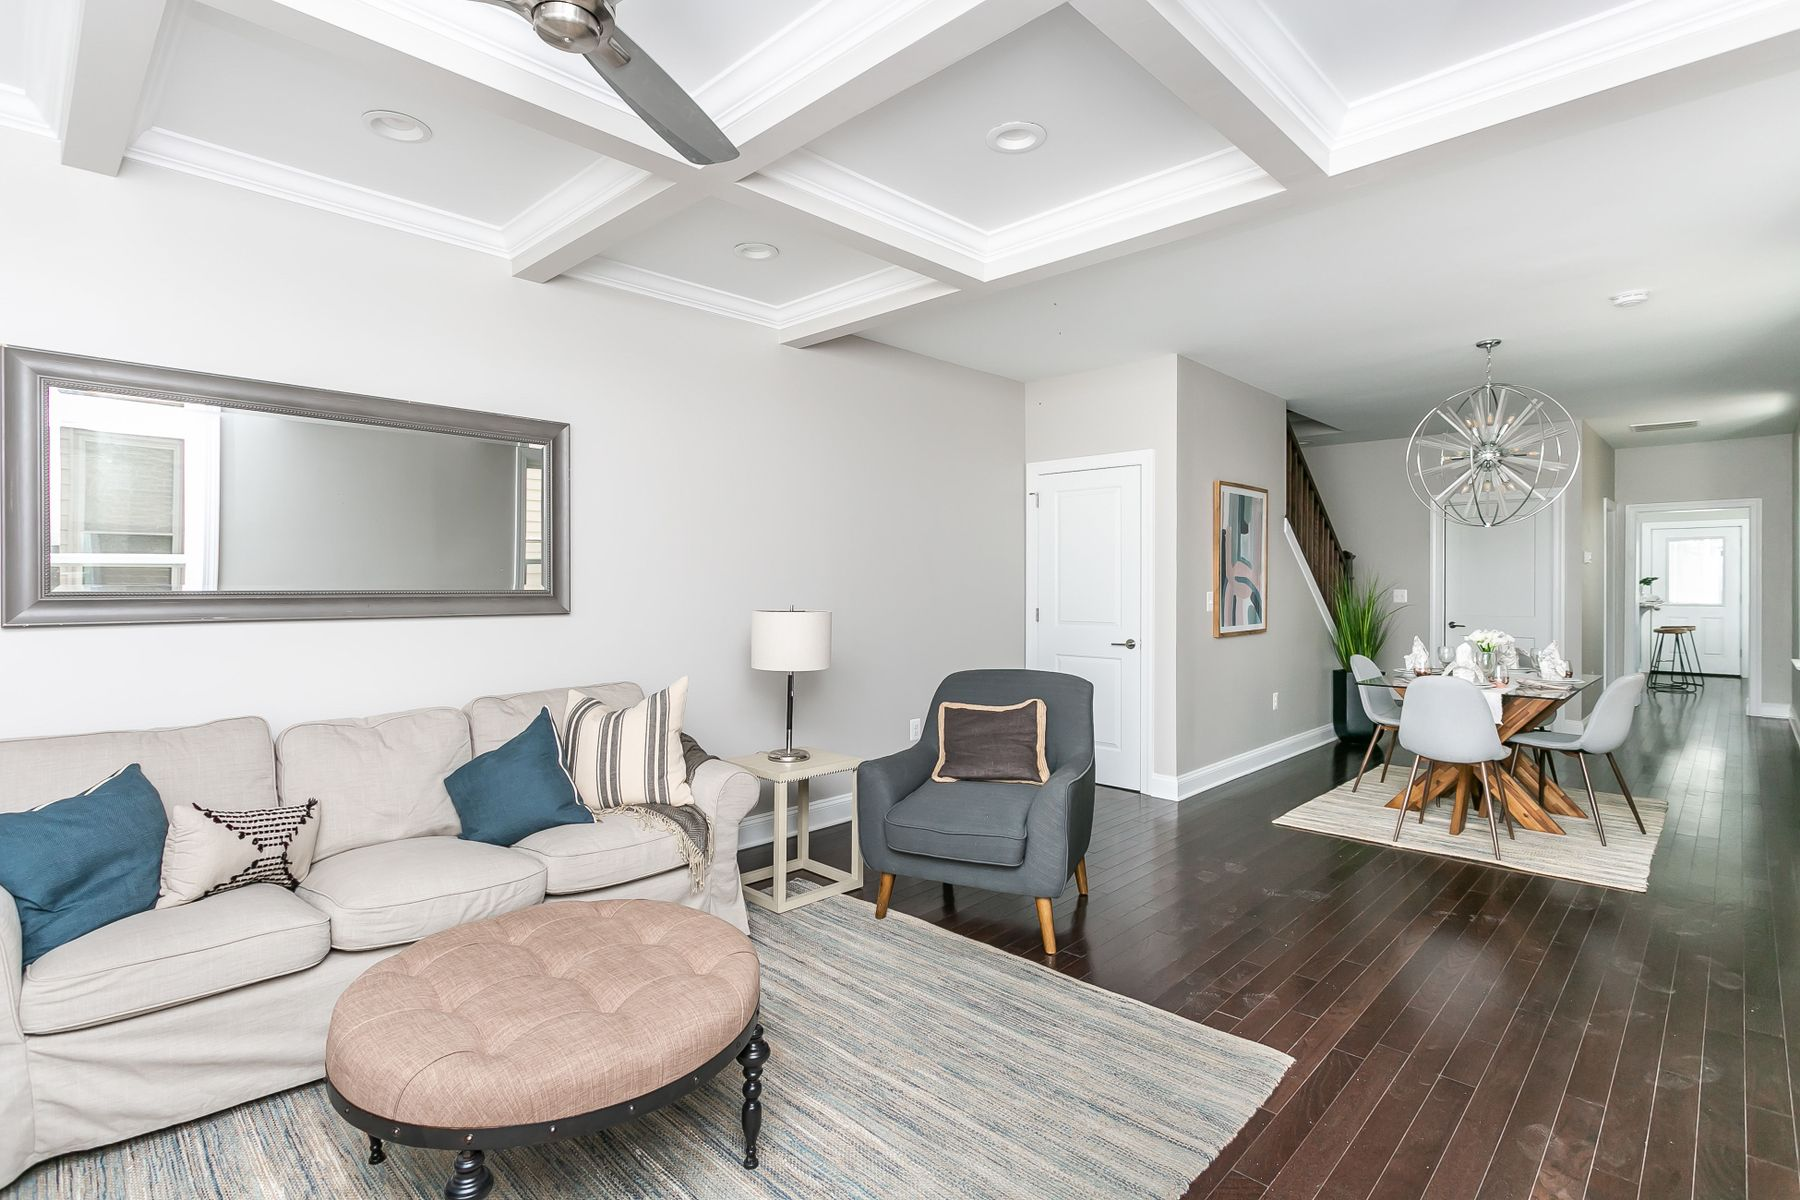 Alternate angle of living room and furniture in remodeled home